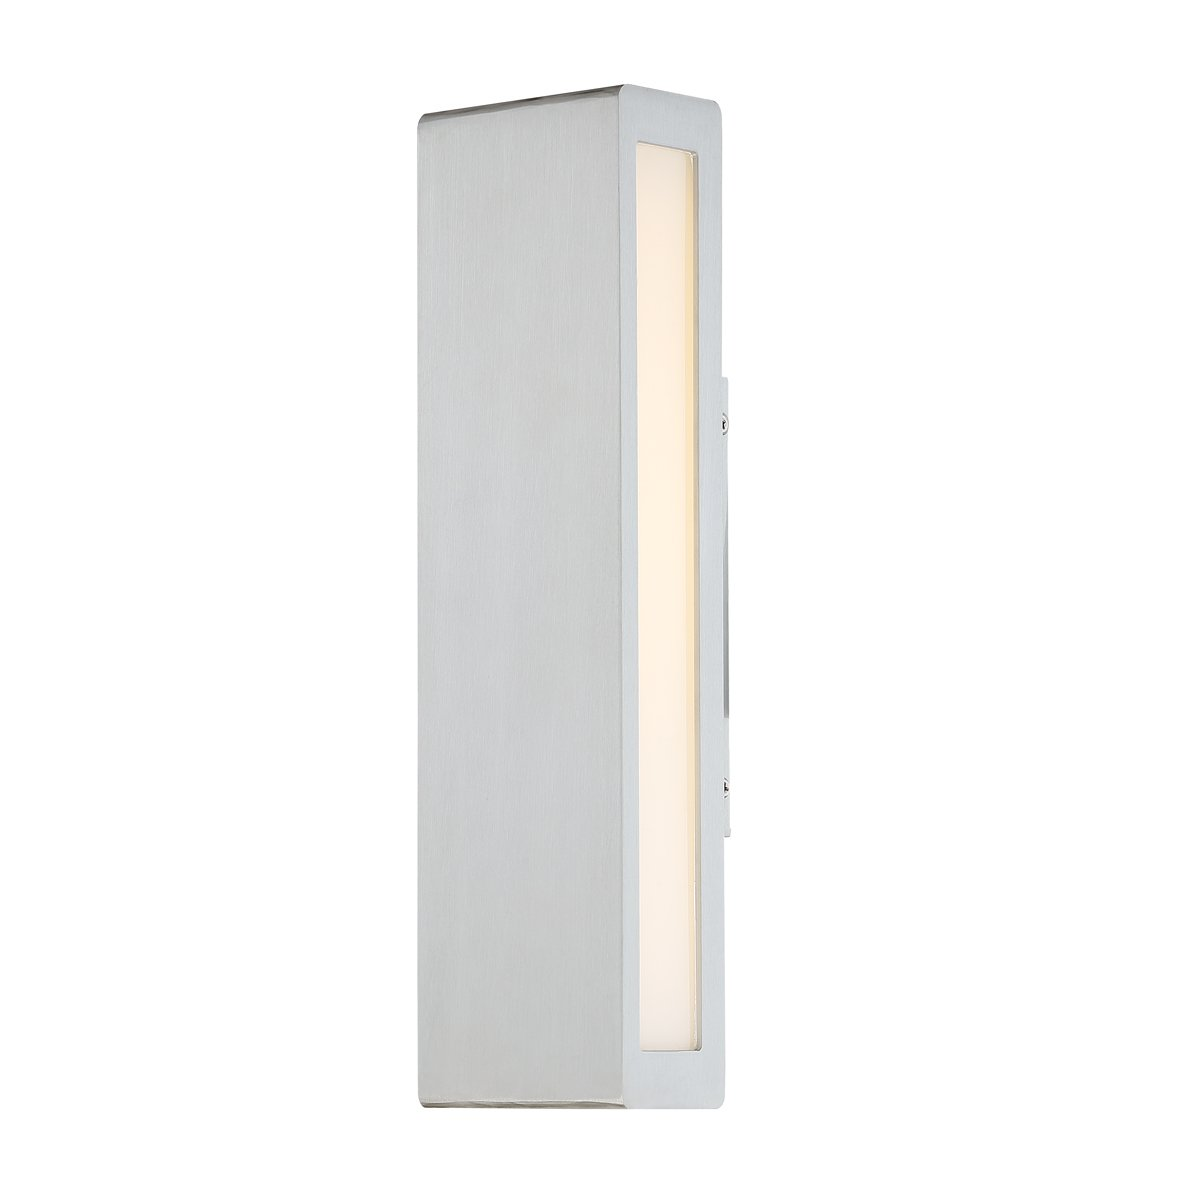 WAC Lighting WS-W17714-AL Verve 14'' LED Outdoor Wall Light, 14 Inches, Brushed Aluminum